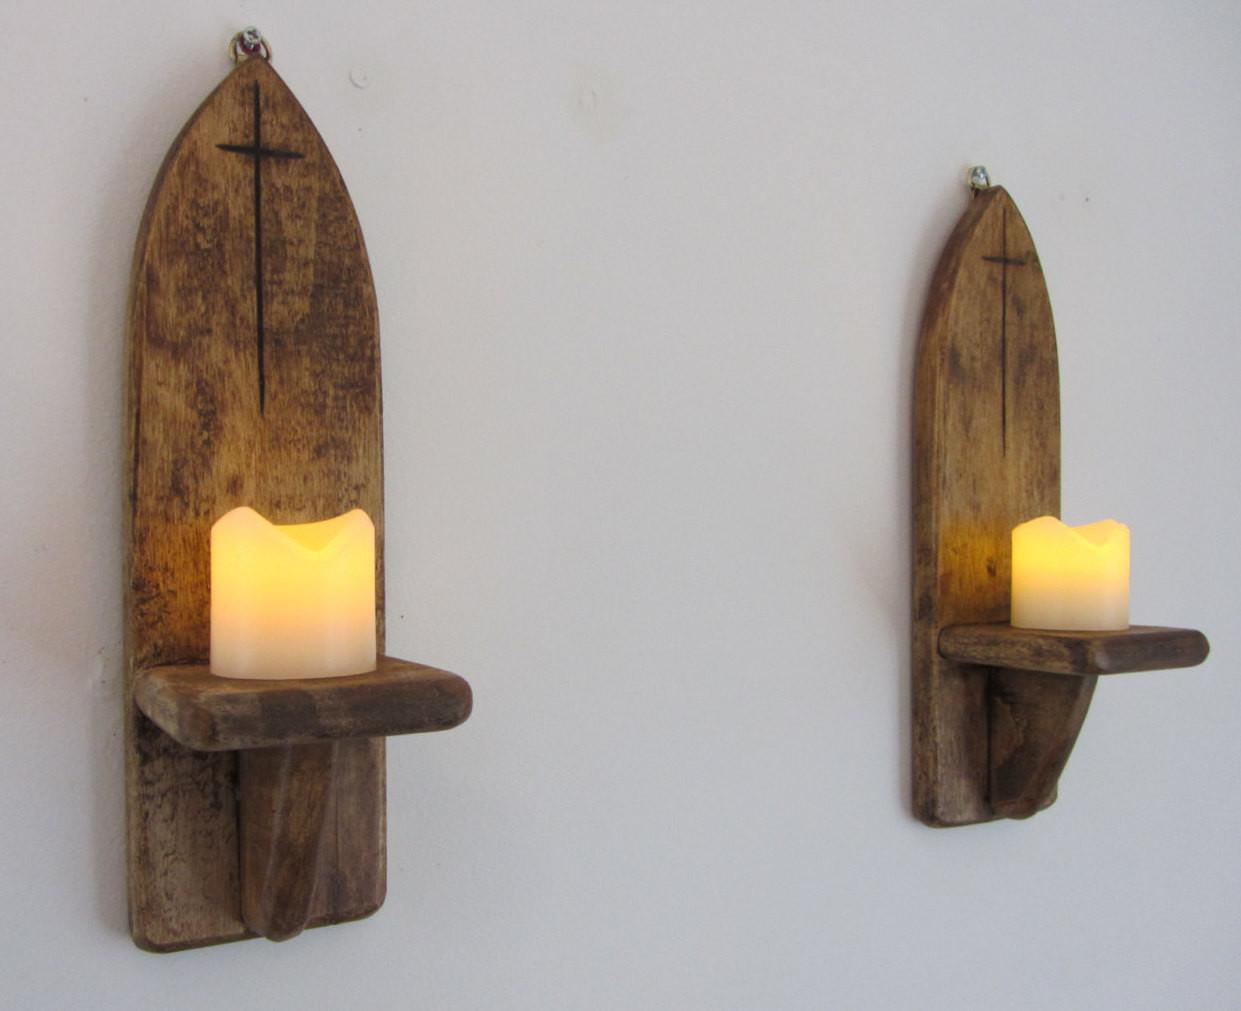 Pair 30cm Tall Gothic Style Wall Sconce Candle Holders